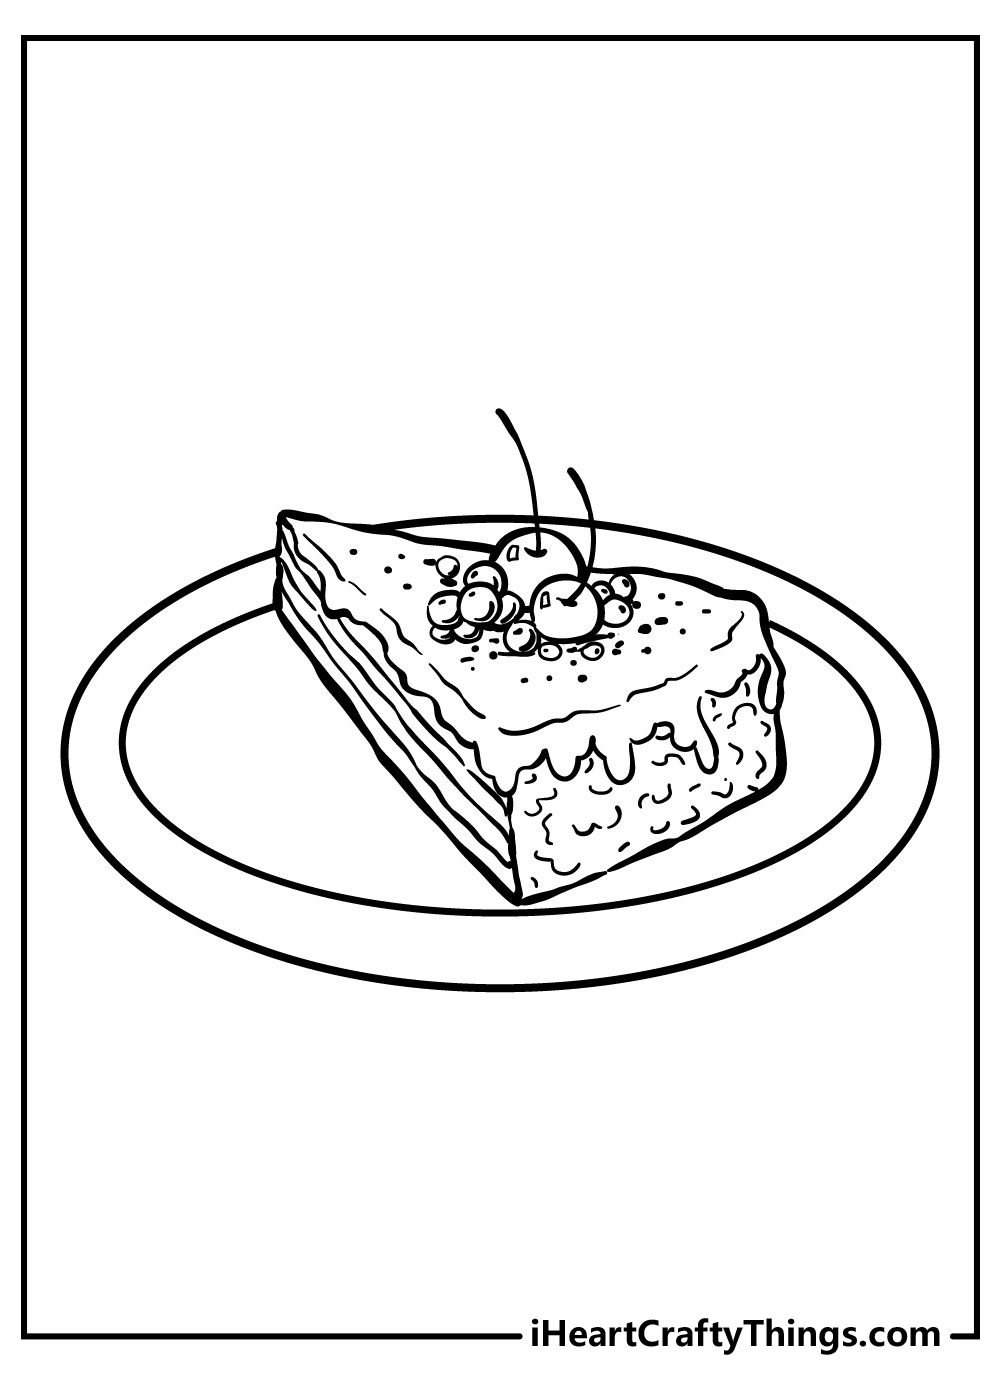 strawberry short cake coloring pages